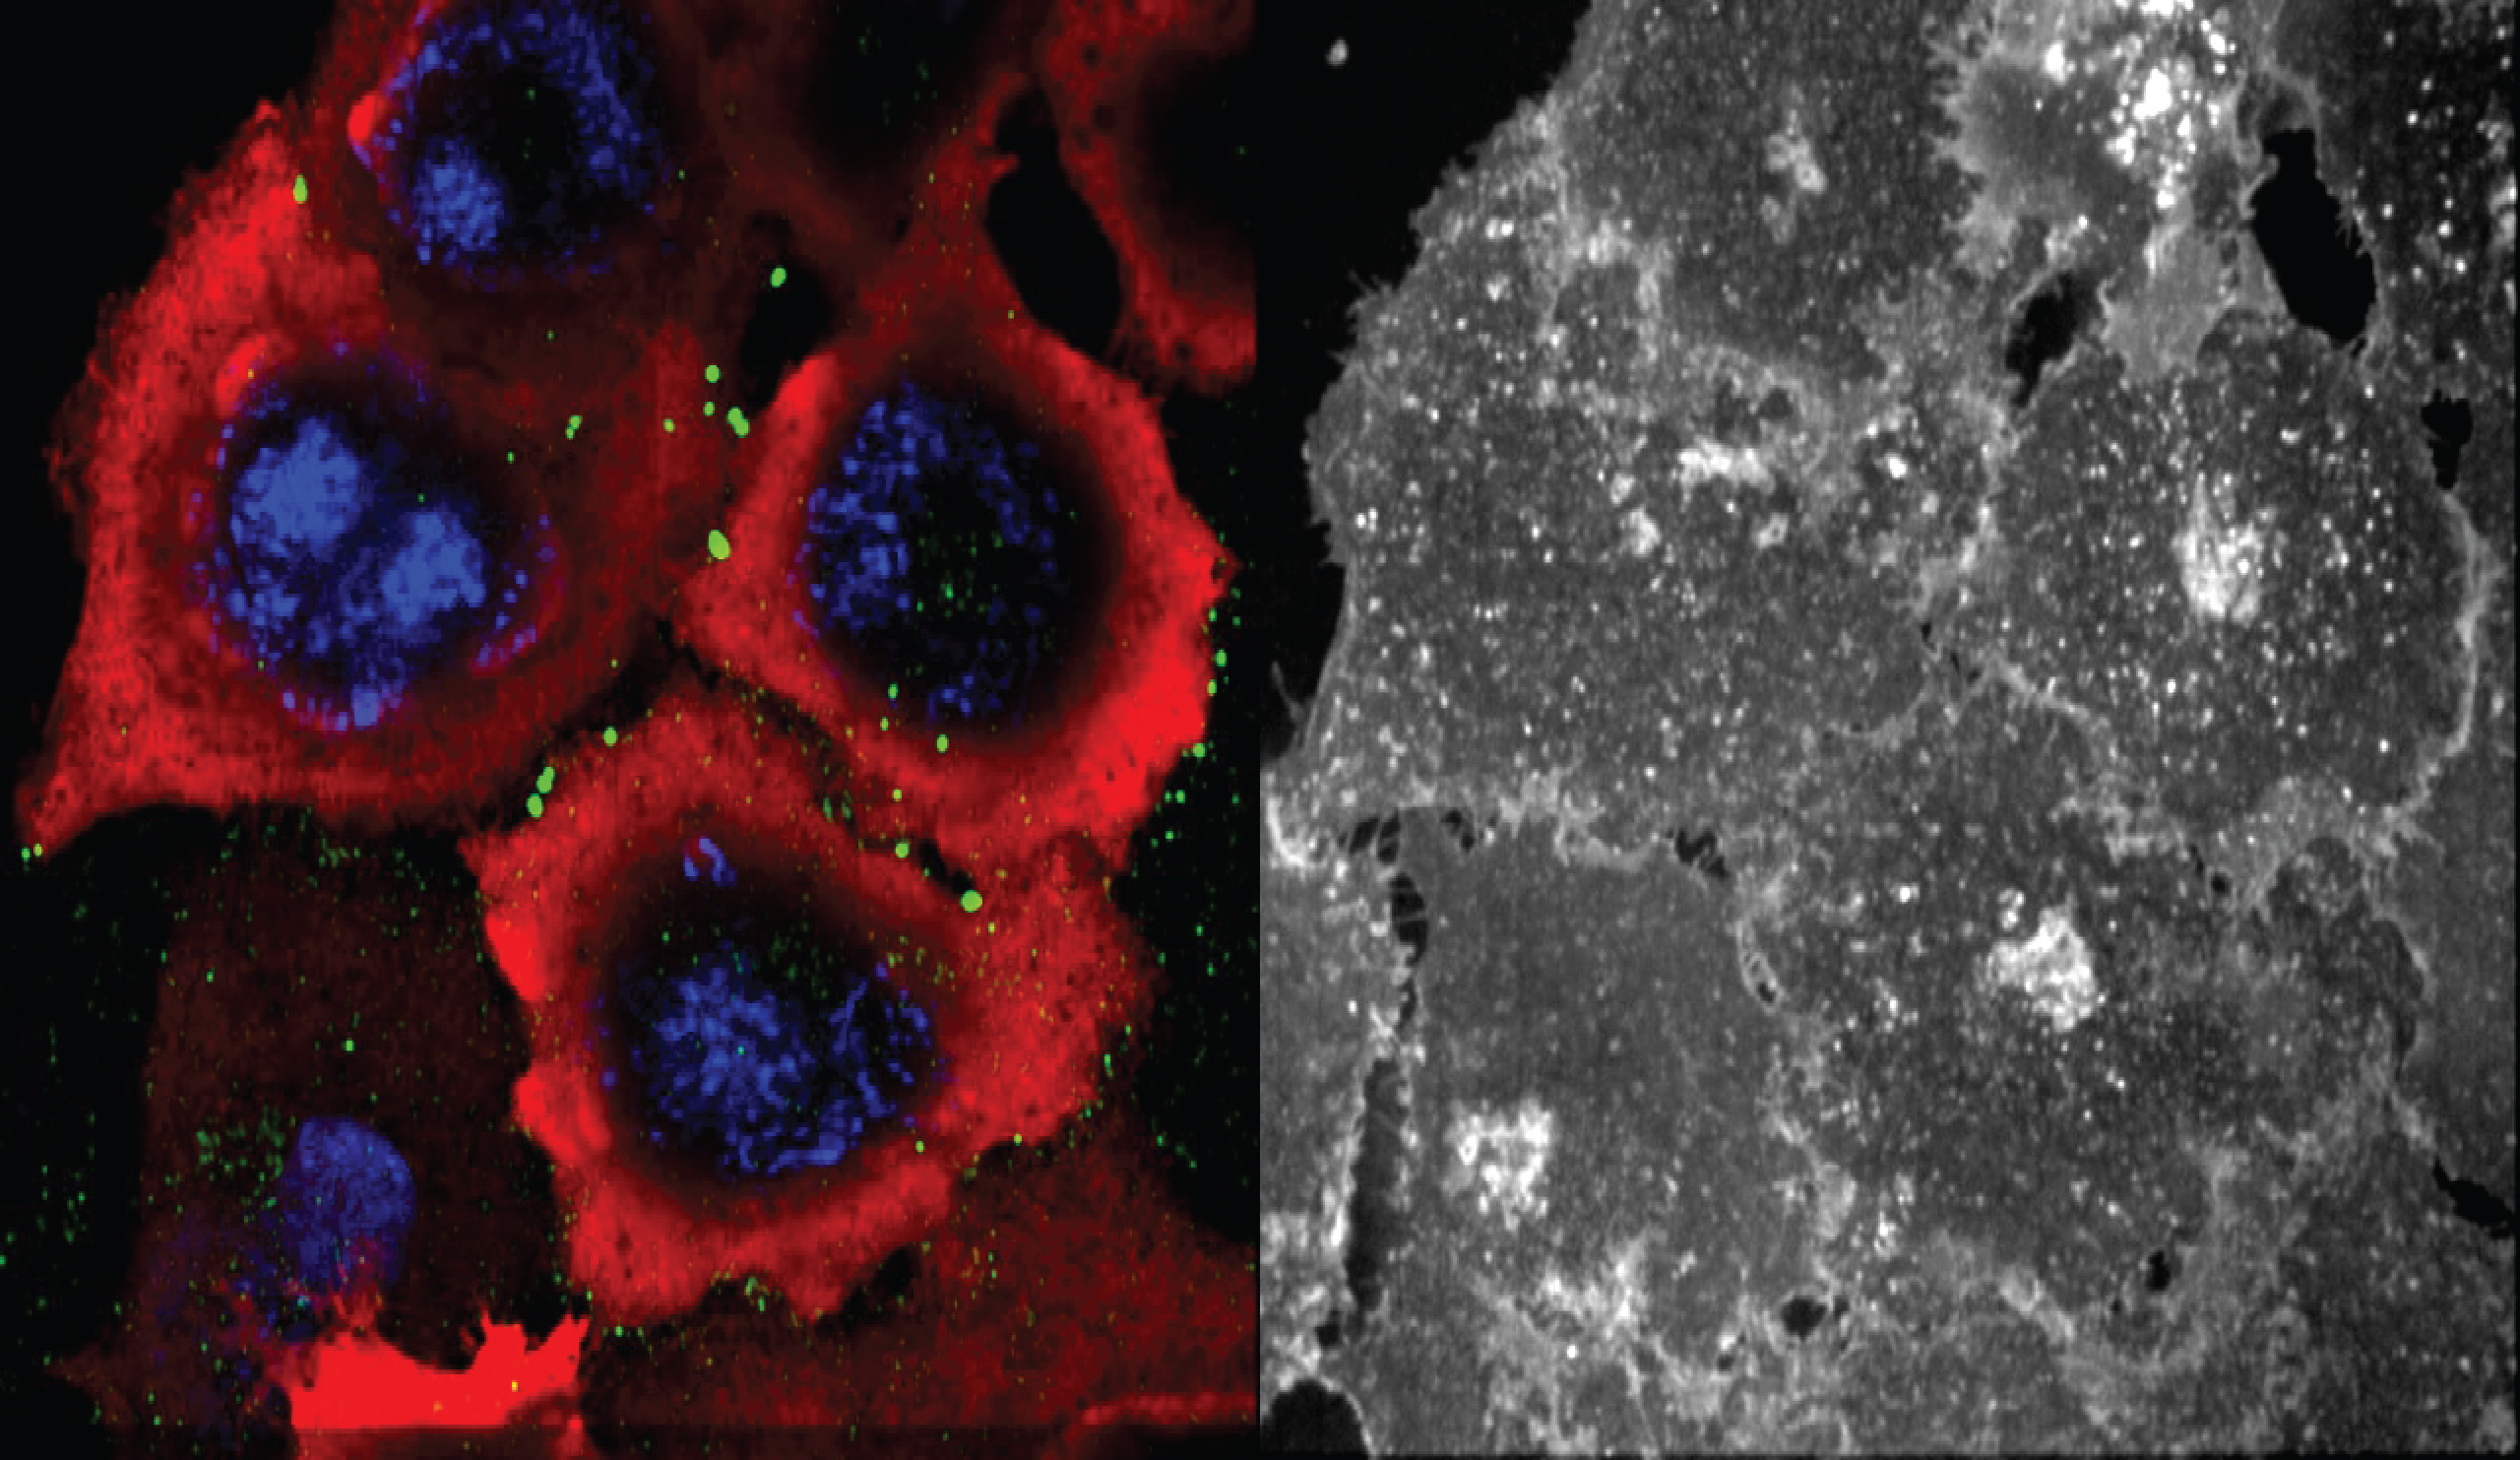 Visualizing protein transport and interaction during stressSub-cellular confocal microscopy